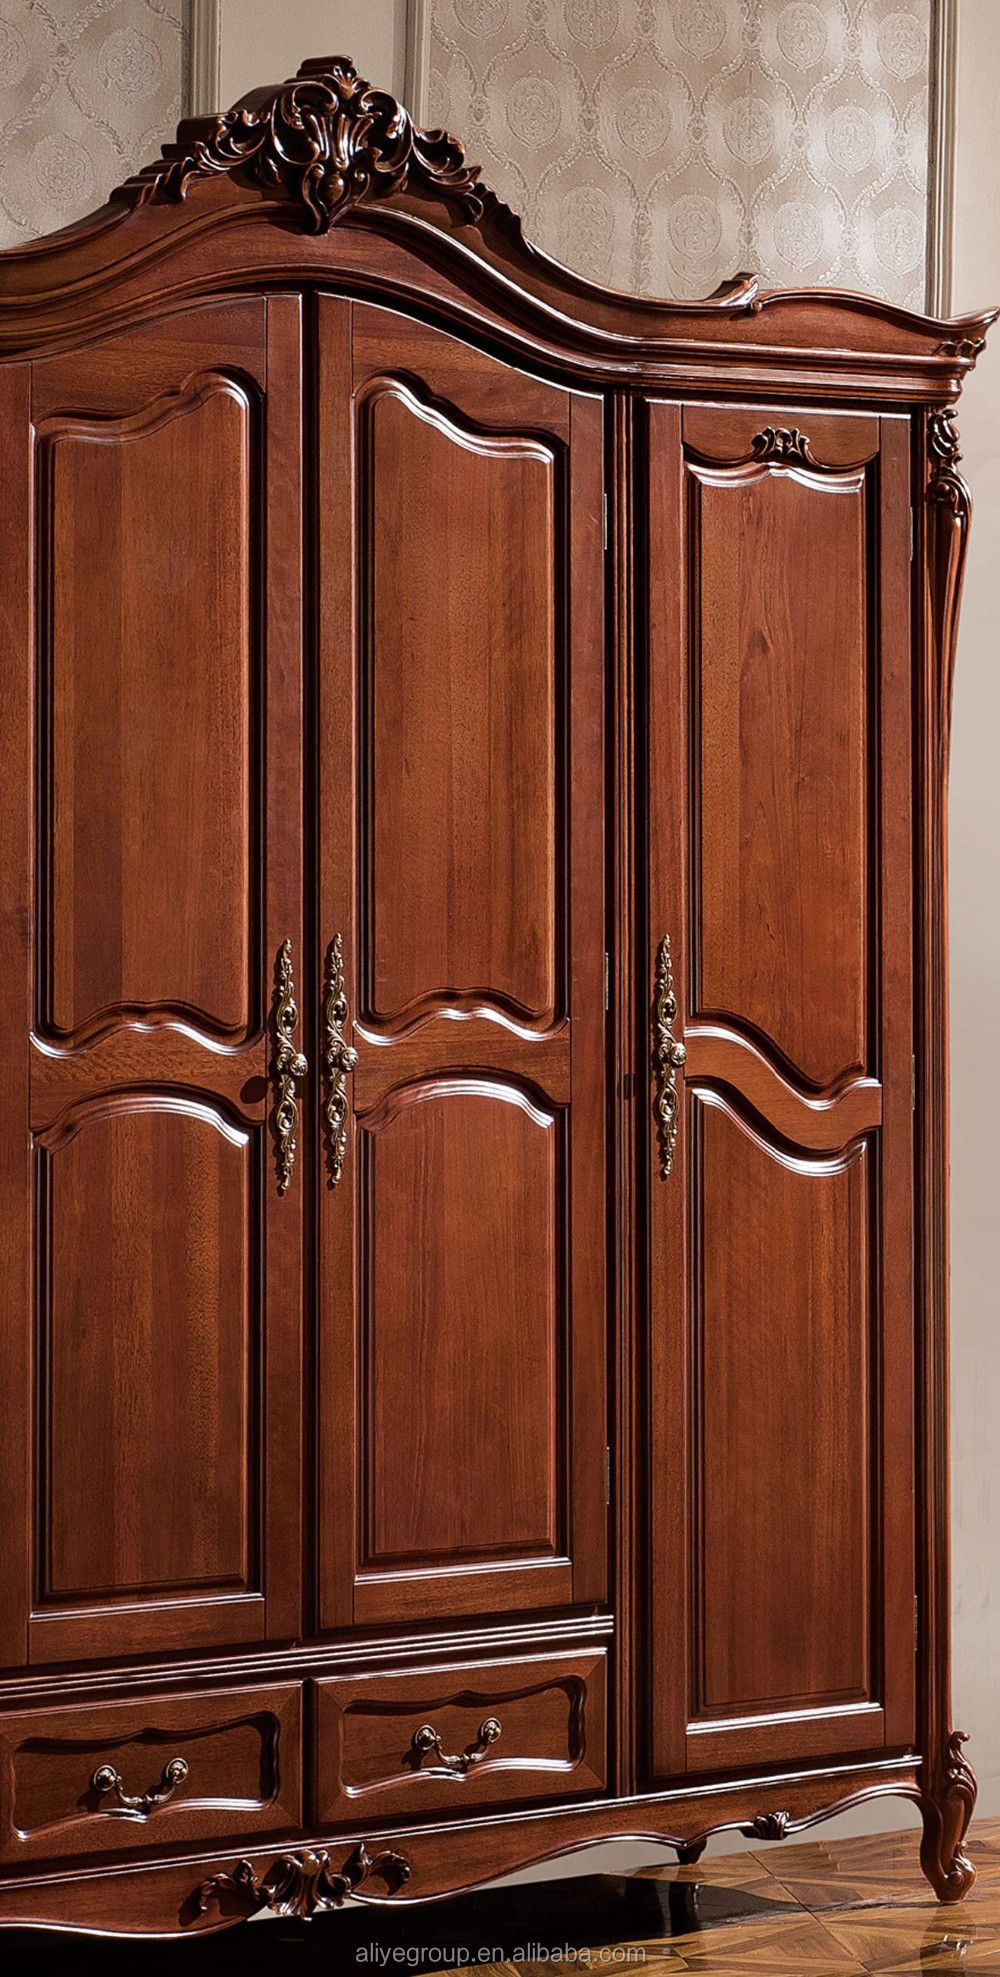 Tyzw881-1- Fancy Wood Carving Bedroom Furniture Set Luxury ...